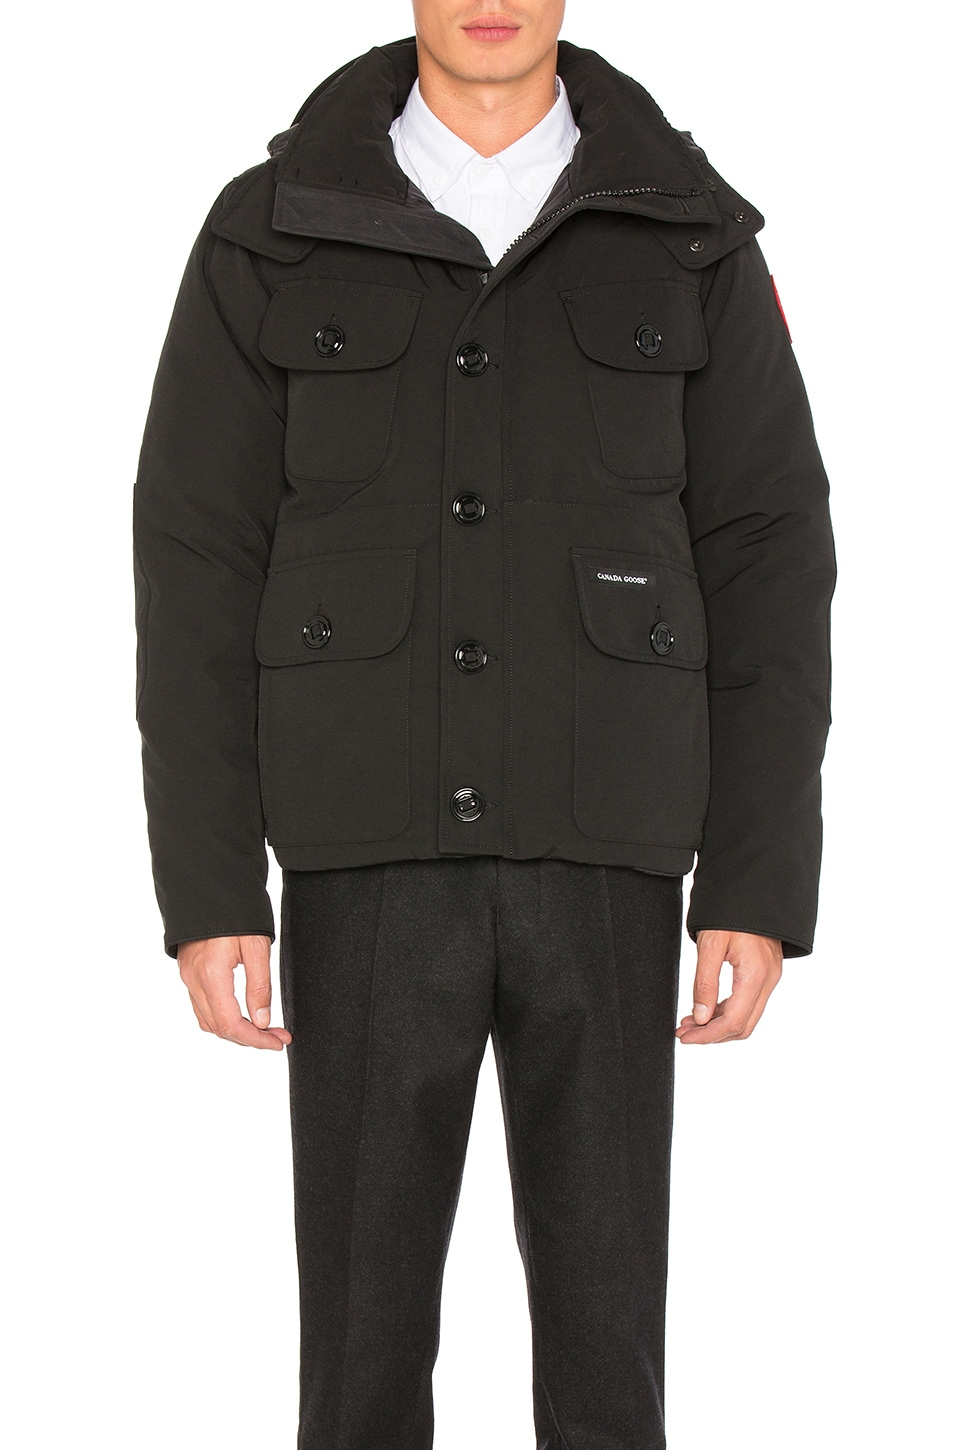 Selkirk Parka by Canada Goose